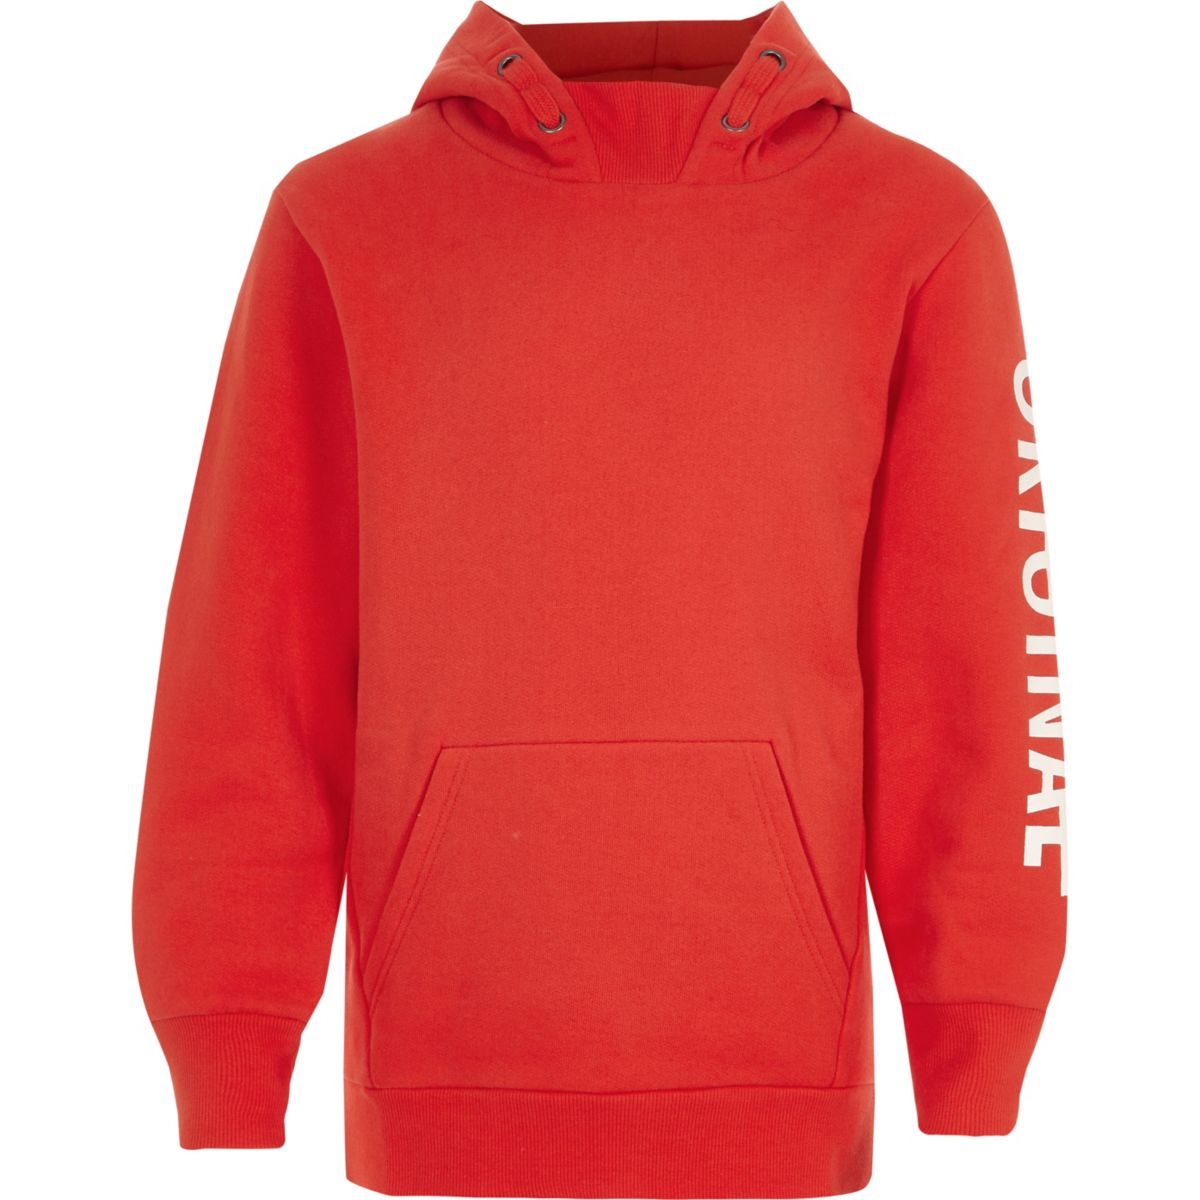 Shop boys' red hoodies & sweatshirts from DICK'S Sporting Goods today. If you find a lower price on boys' red hoodies & sweatshirts somewhere else, we'll match it with our Best Price Guarantee! Check out customer reviews on boys' red hoodies & sweatshirts and save big on a variety of products. Plus, ScoreCard members earn points on every purchase.